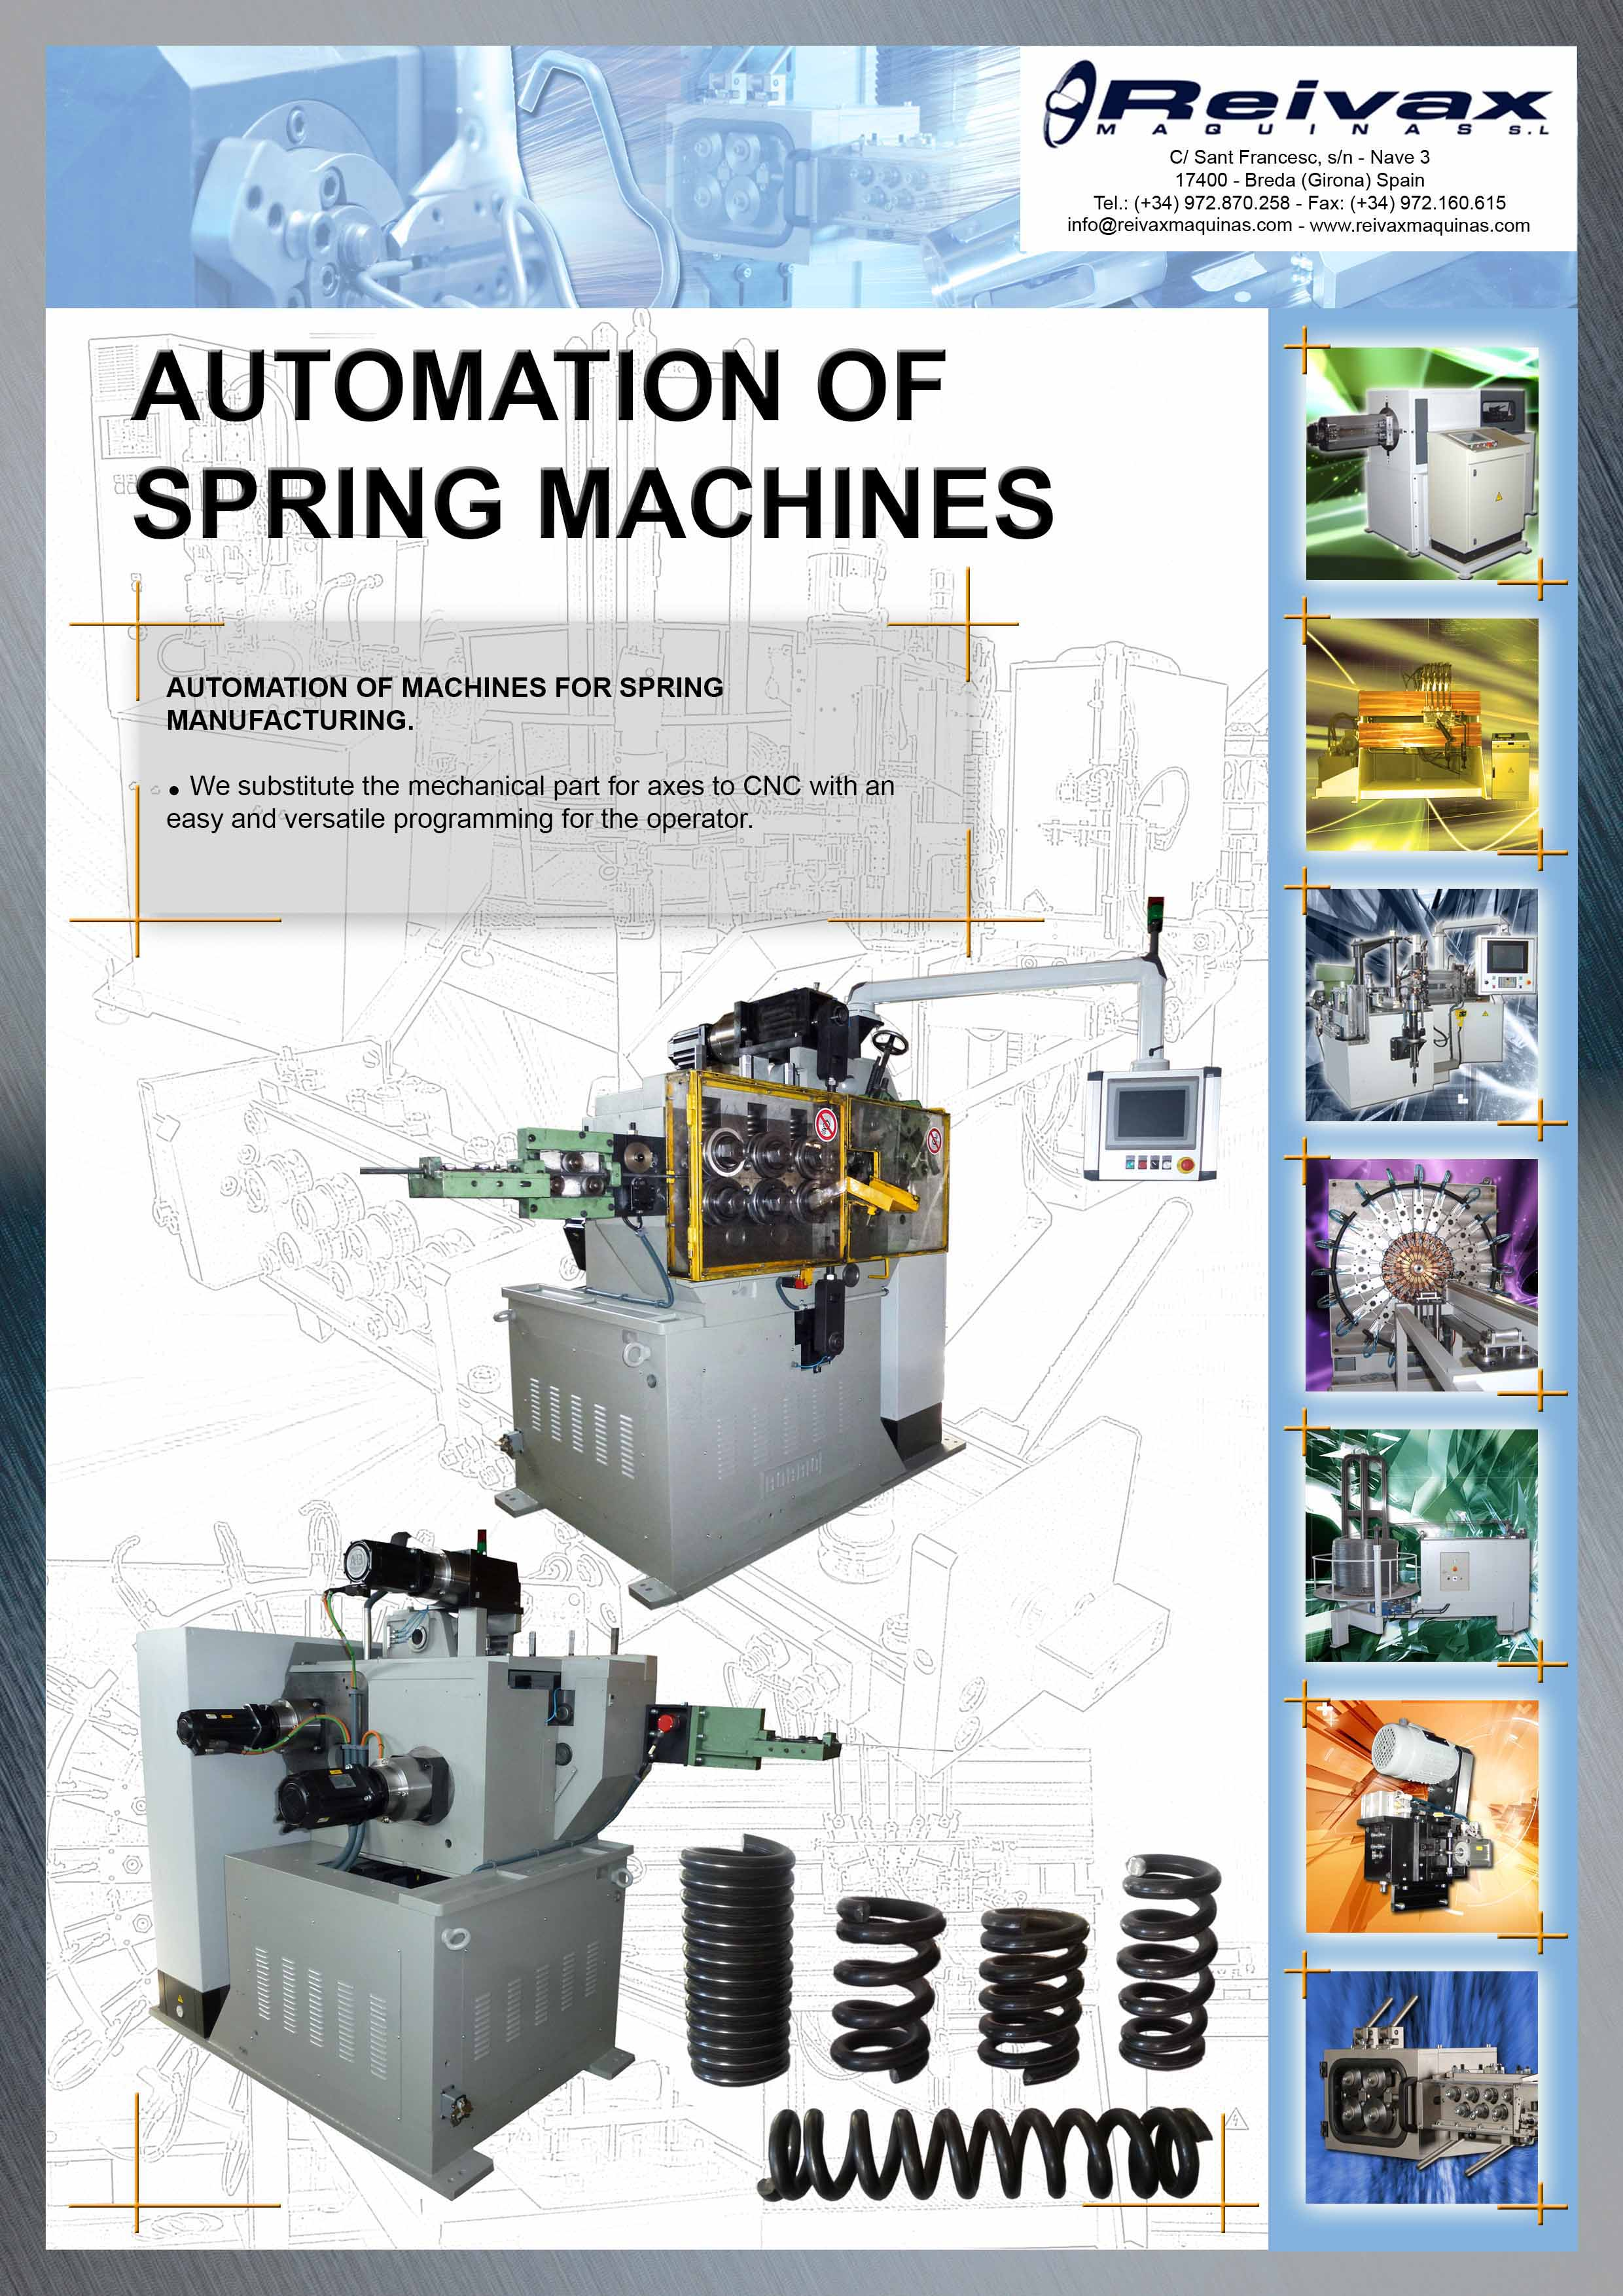 ReivaxMaquinas: Technical Details Automation Spring Machines